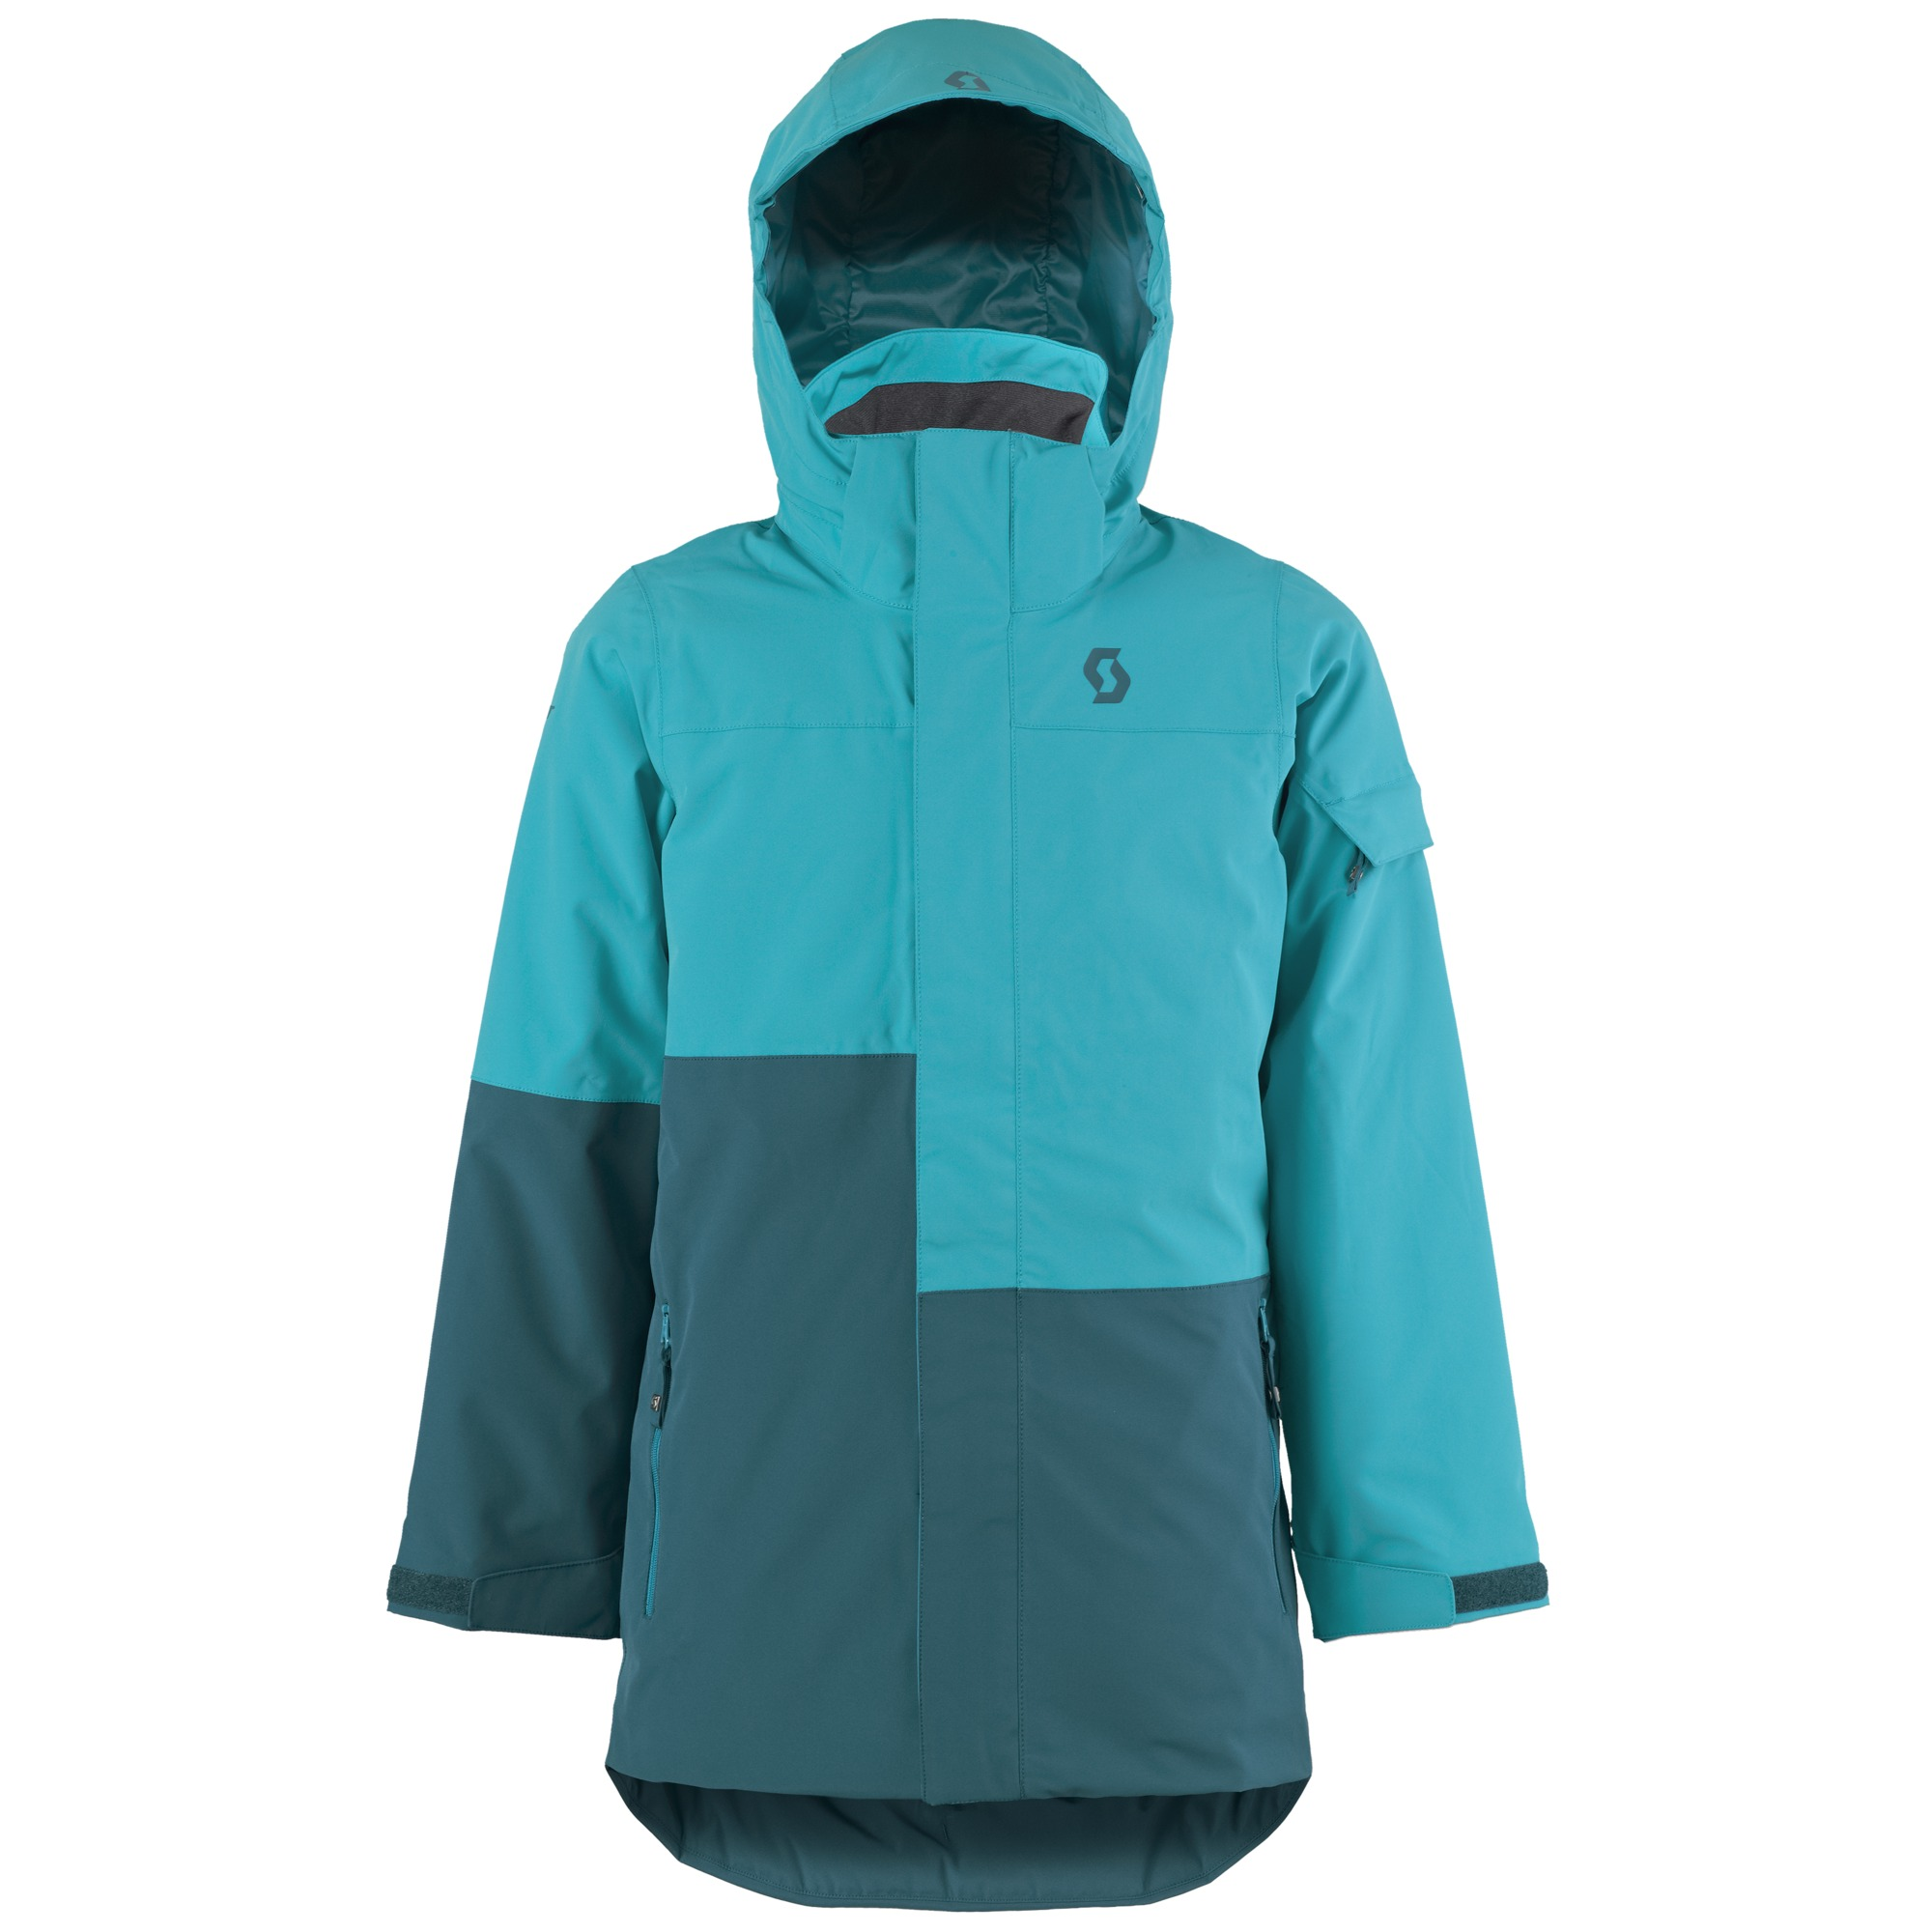 SCOTT Terrain Dryo Boy's Jacket